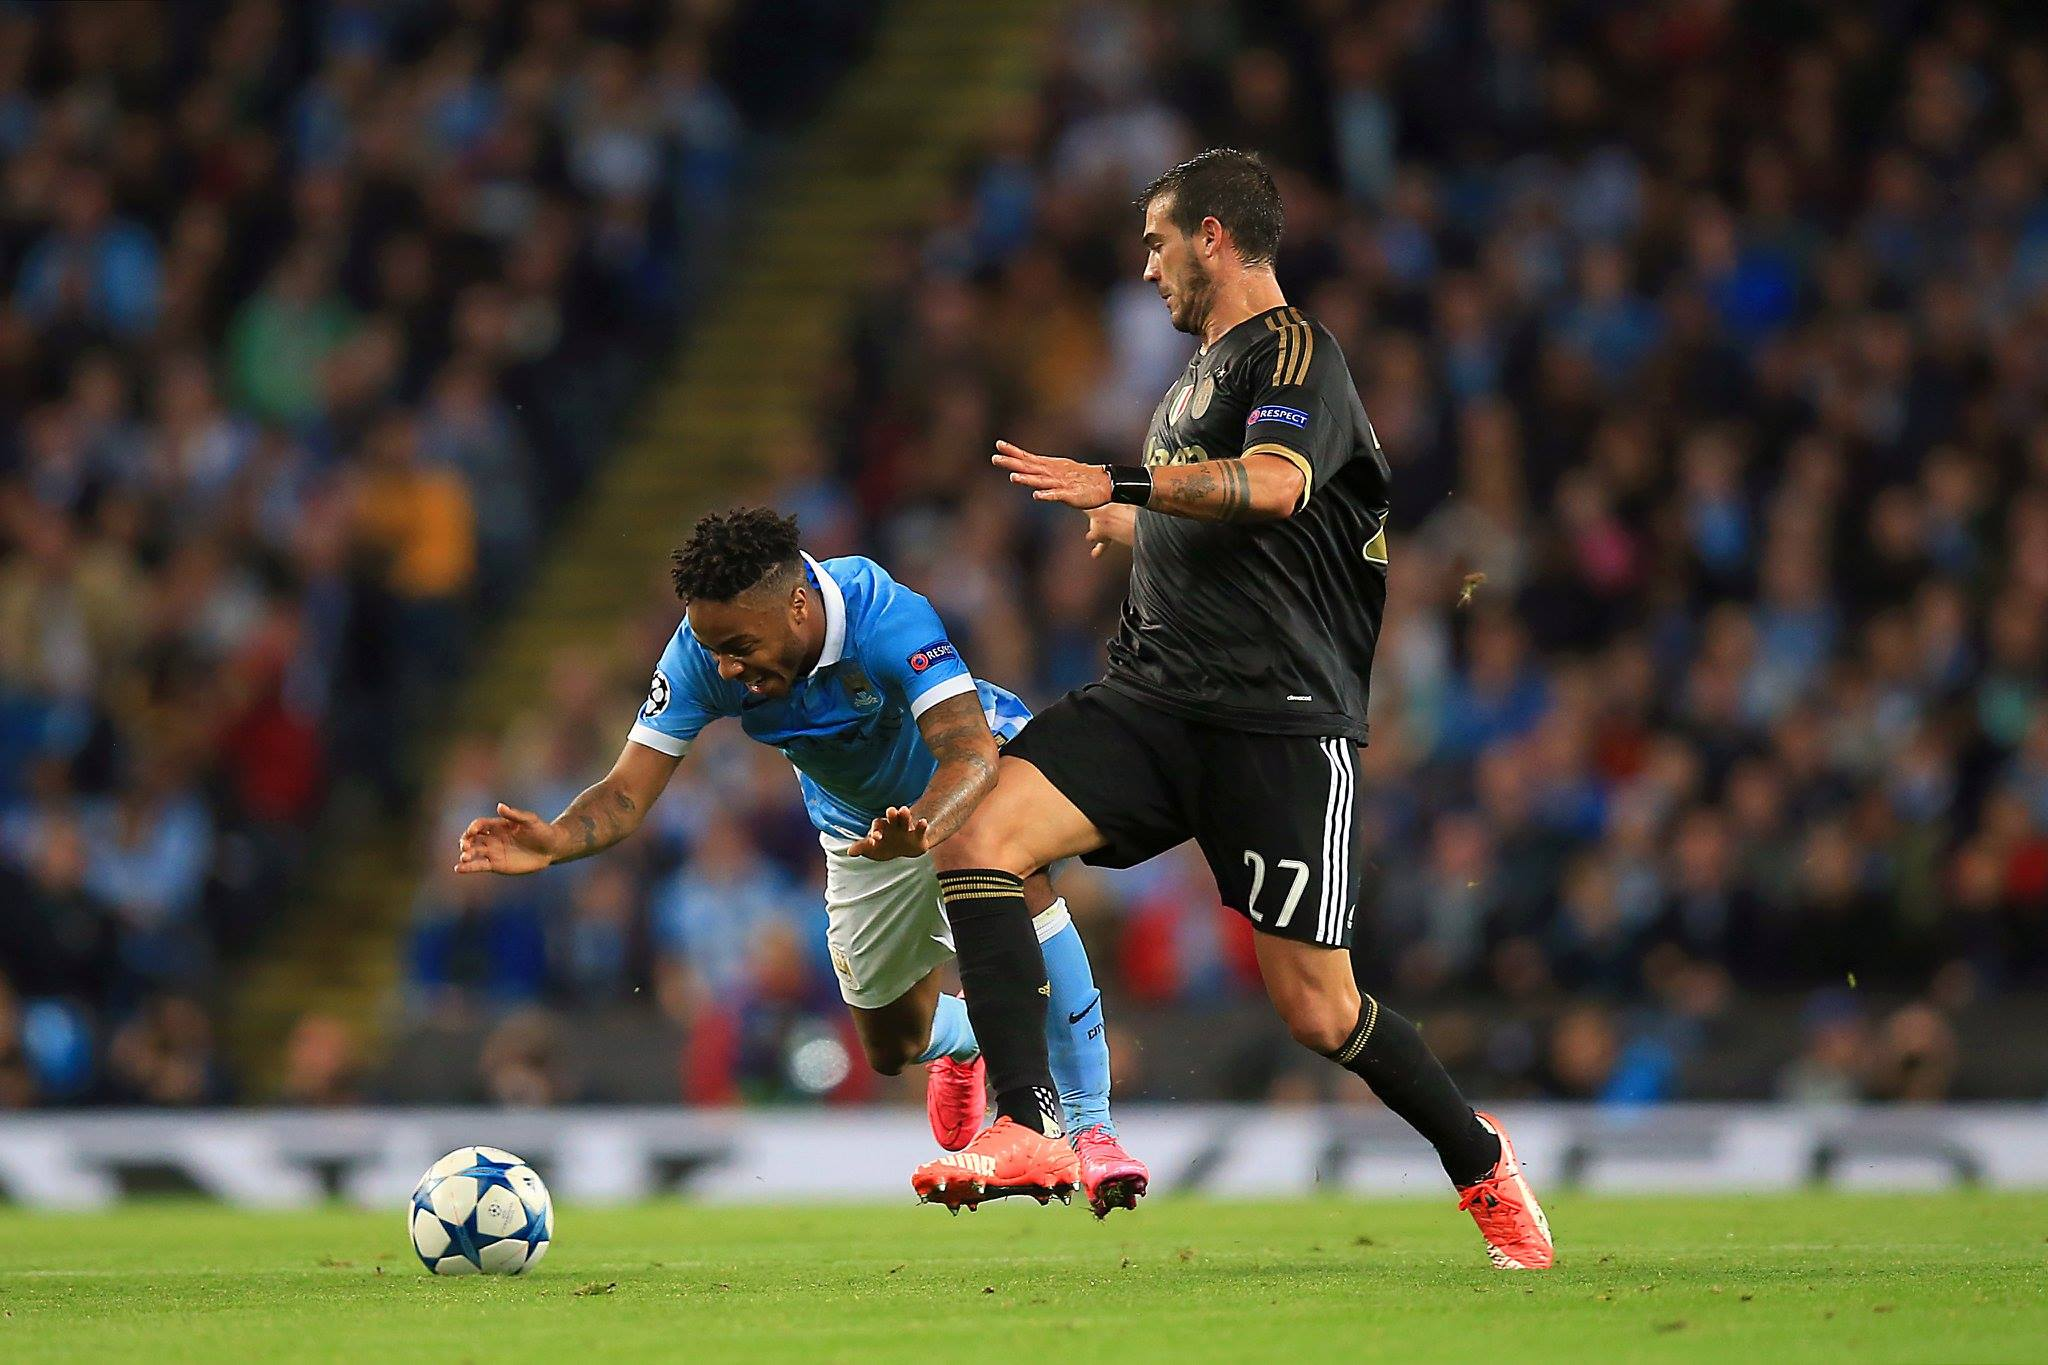 Sterling takes a pounding - City's No7 was on the receiving end of some heavy Juventus challenges. Courtesy@MCFC